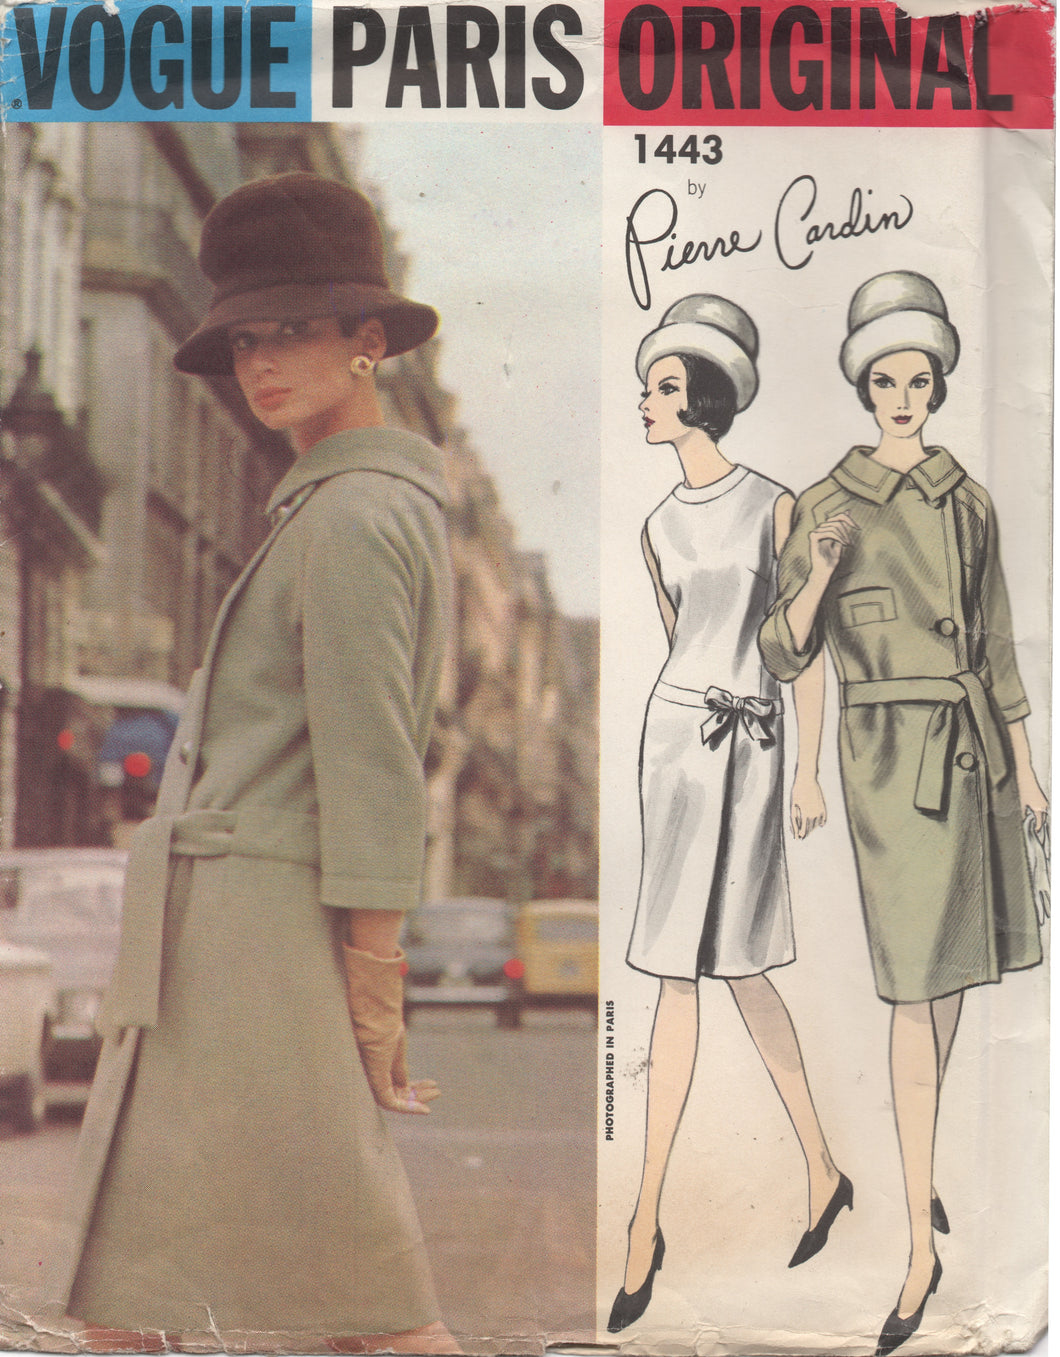 1960's Vogue Paris Original - Pierre Cardin - One Piece Dress with Bow Detail and Side Button Coat - UC/FF - Bust 31